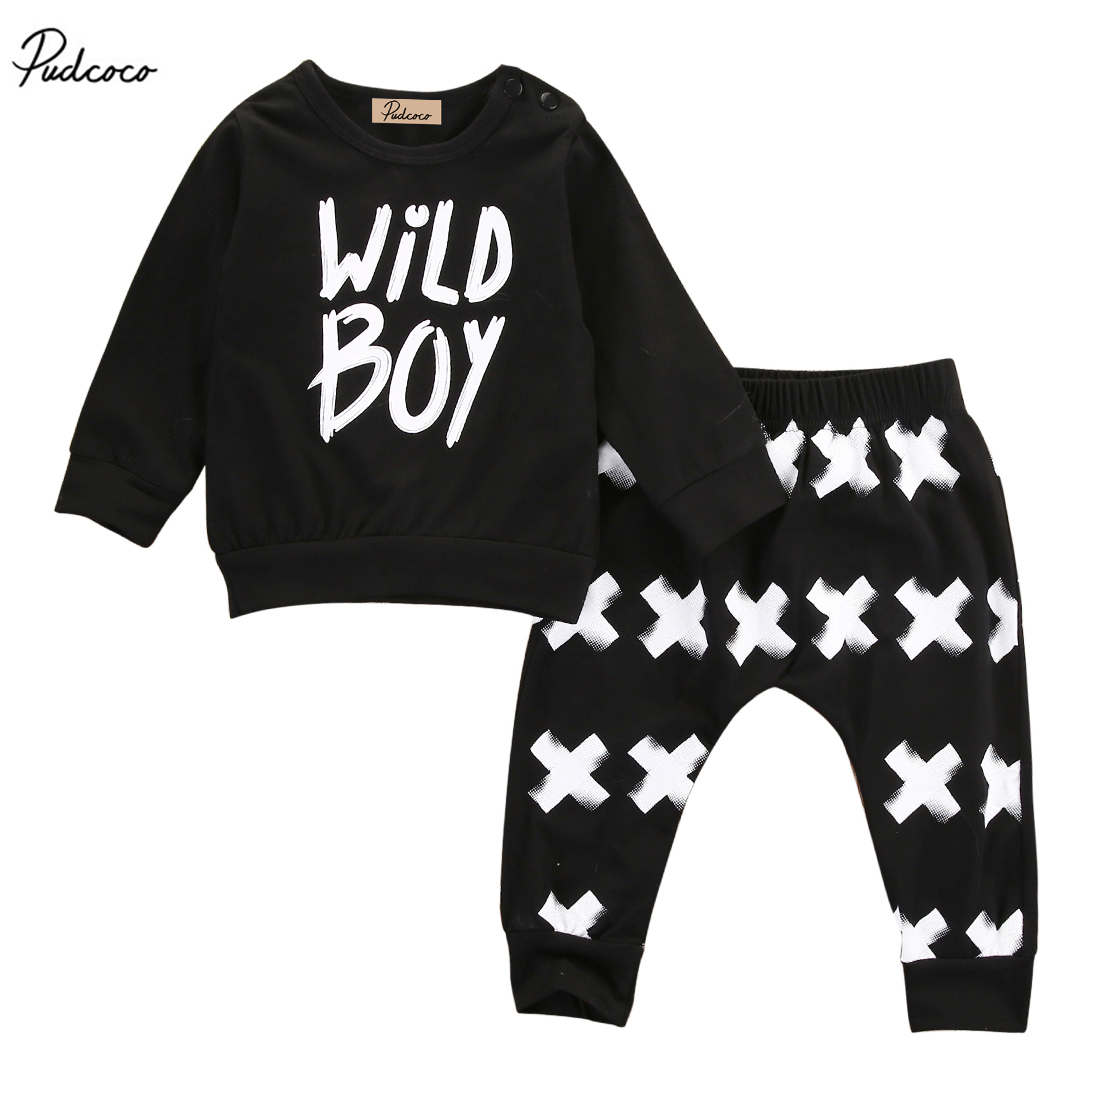 Wild Boy Newborn Baby Boys Infant Long Sleeve T-Shirt Tops X Print Pants Clothes Outfit Set 0-24M infant baby boy girl 2pcs clothes set kids short sleeve you serious clark letters romper tops car print pants 2pcs outfit set